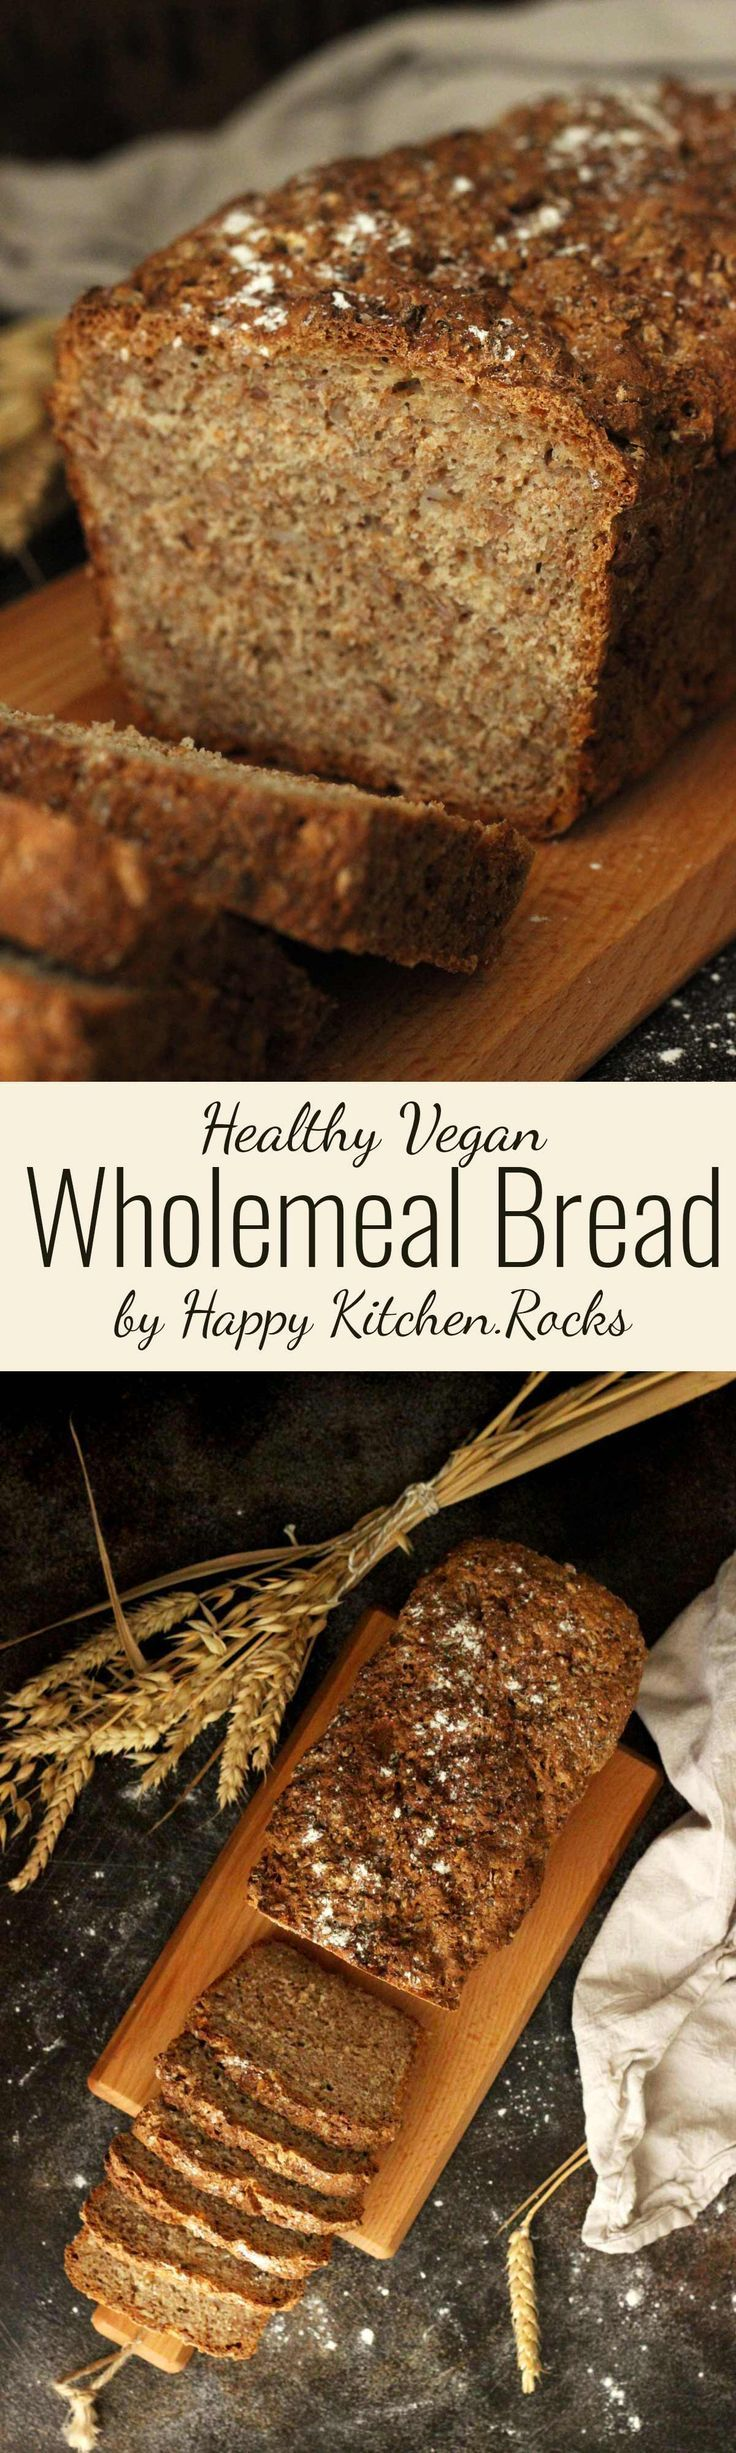 Healthy Wholemeal Bread recipe is vegan, simple and just perfect for  beginner bakers. Learn how to bake no-fail healthy whole grain bread  using just a few ingredients you can easily tweak!